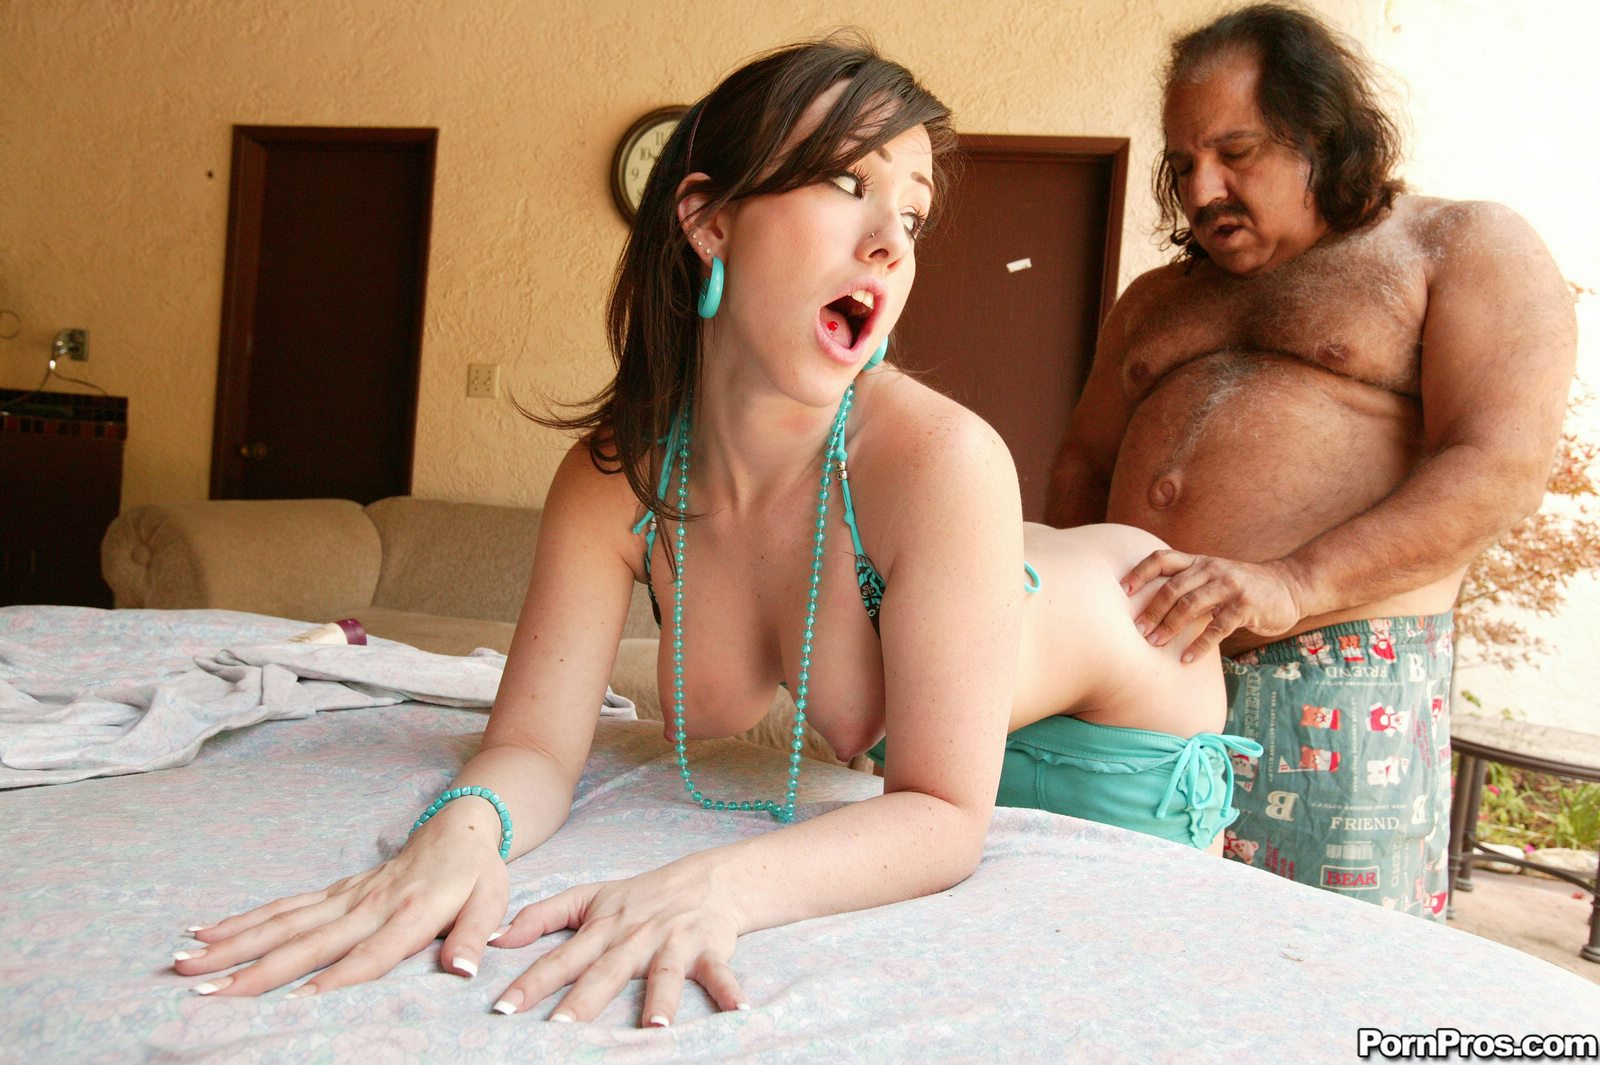 ugly-old-man-fuck-sexy-girl